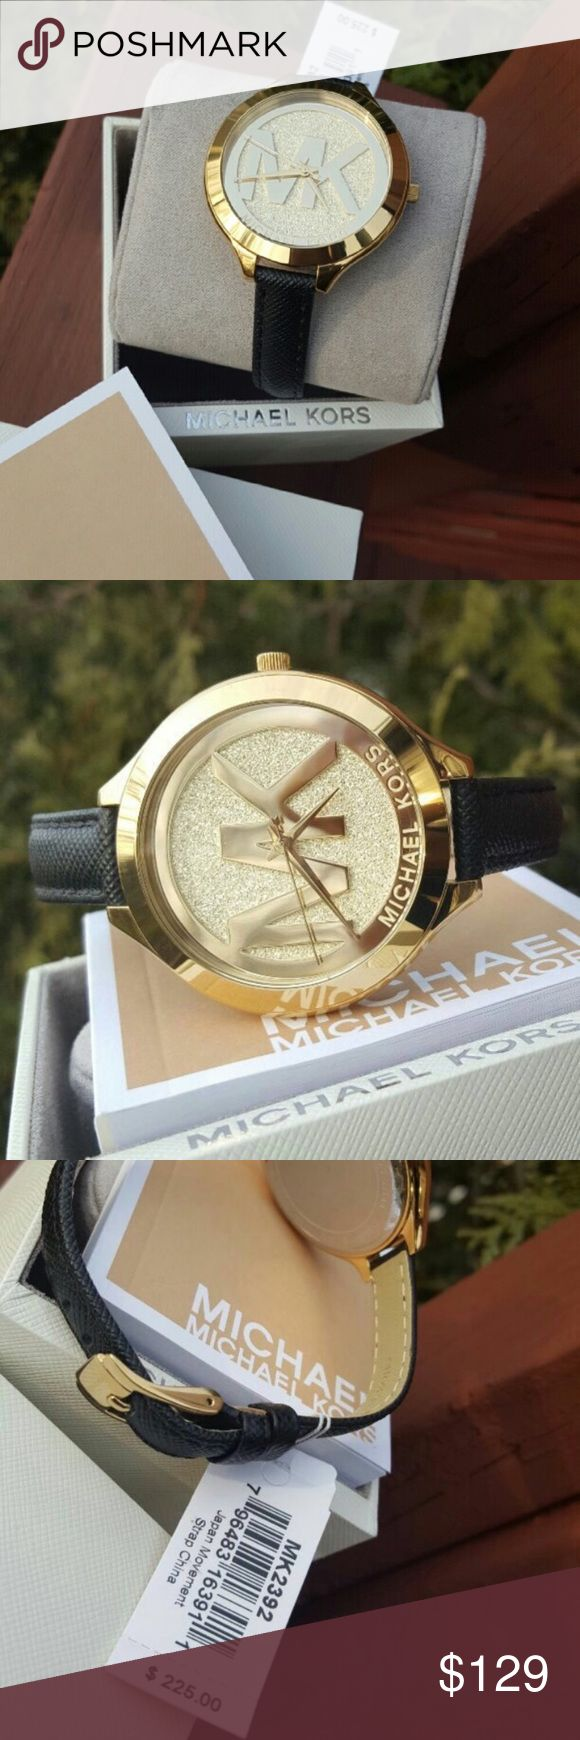 New Michael Kors Glam MK Runway watch MK2392 🔥 LAST 1! 🔥 Authentic MK2392 / Model: Runway / Retail: $225 / Glam gold stainless steel with Black saffiano genuine leather band 💎 MK engraved dial 💎 42mm case / New with Michael Kors watch box and owners booklet included / 5 ATM / UPC: 796483076914 😍 What a beauty! 😍 No trades. Buy now  or offer only. Shipped same business day. Michael Kors Accessories Watches